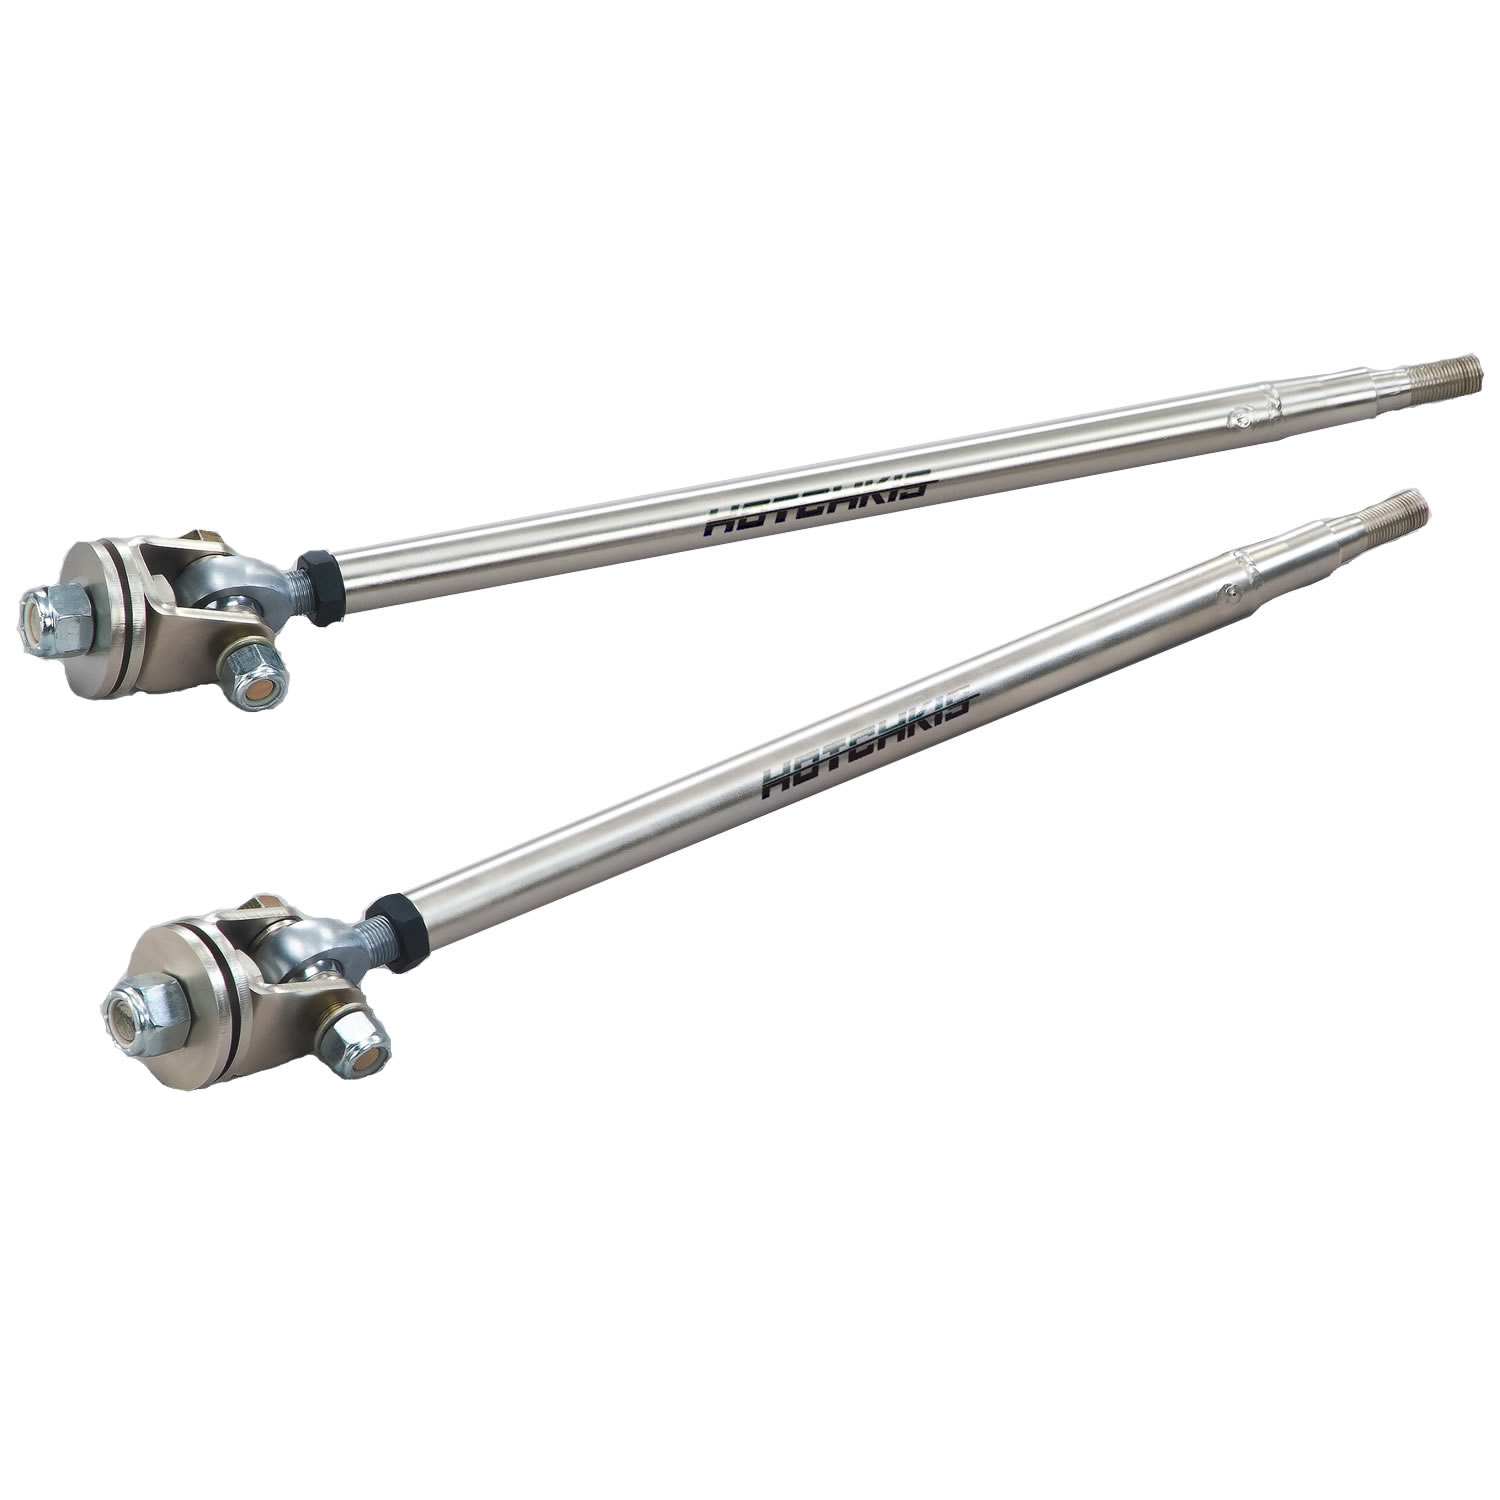 67-70 Dodge B and E Body Adjustable Strut Rods from Hotchkis Sport Suspension